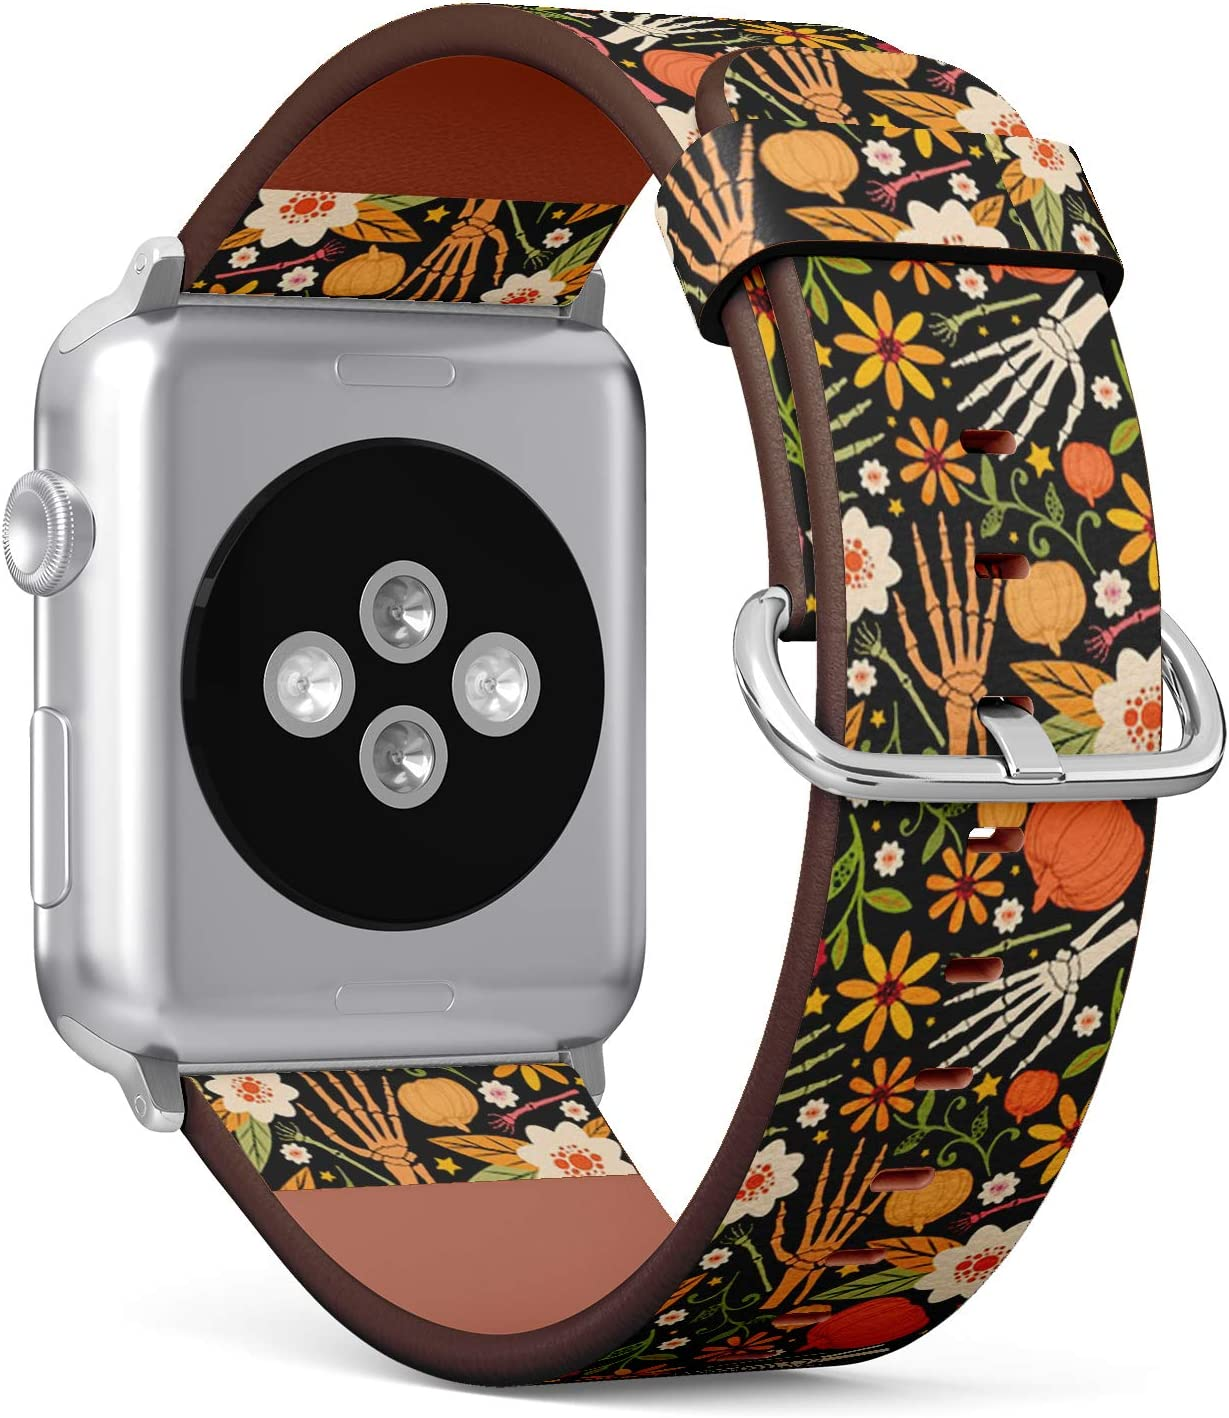 Compatible with Small Apple Watch 38mm & 40mm - (Series 5, 4, 3, 2, 1) Leather Watch Wrist Band Strap Bracelet with Stainless Steel Clasp and Adapters (Halloween Bones Floral)